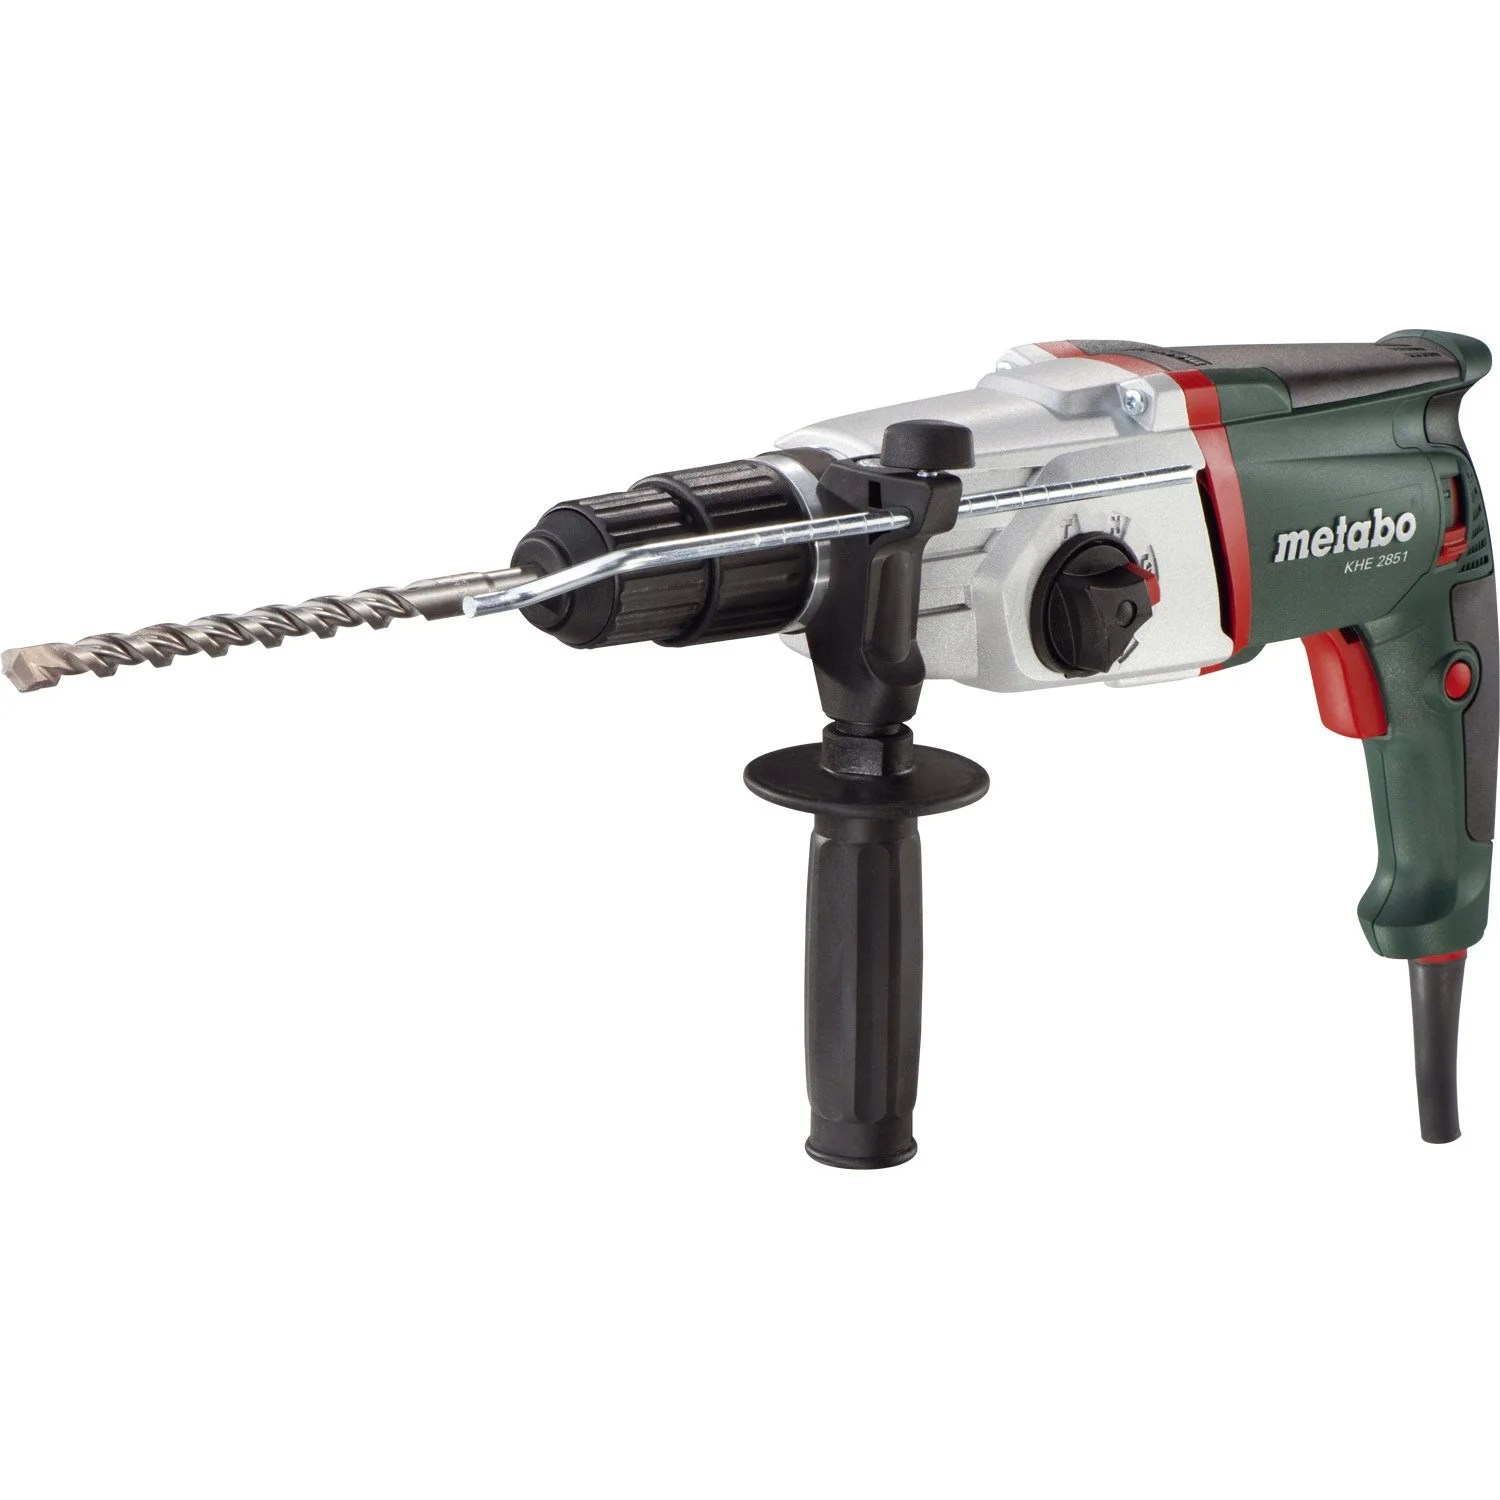 Metabo Leroy Merlin Marteau Perforateur Sds Plus Metabo Khe2851 1010 W